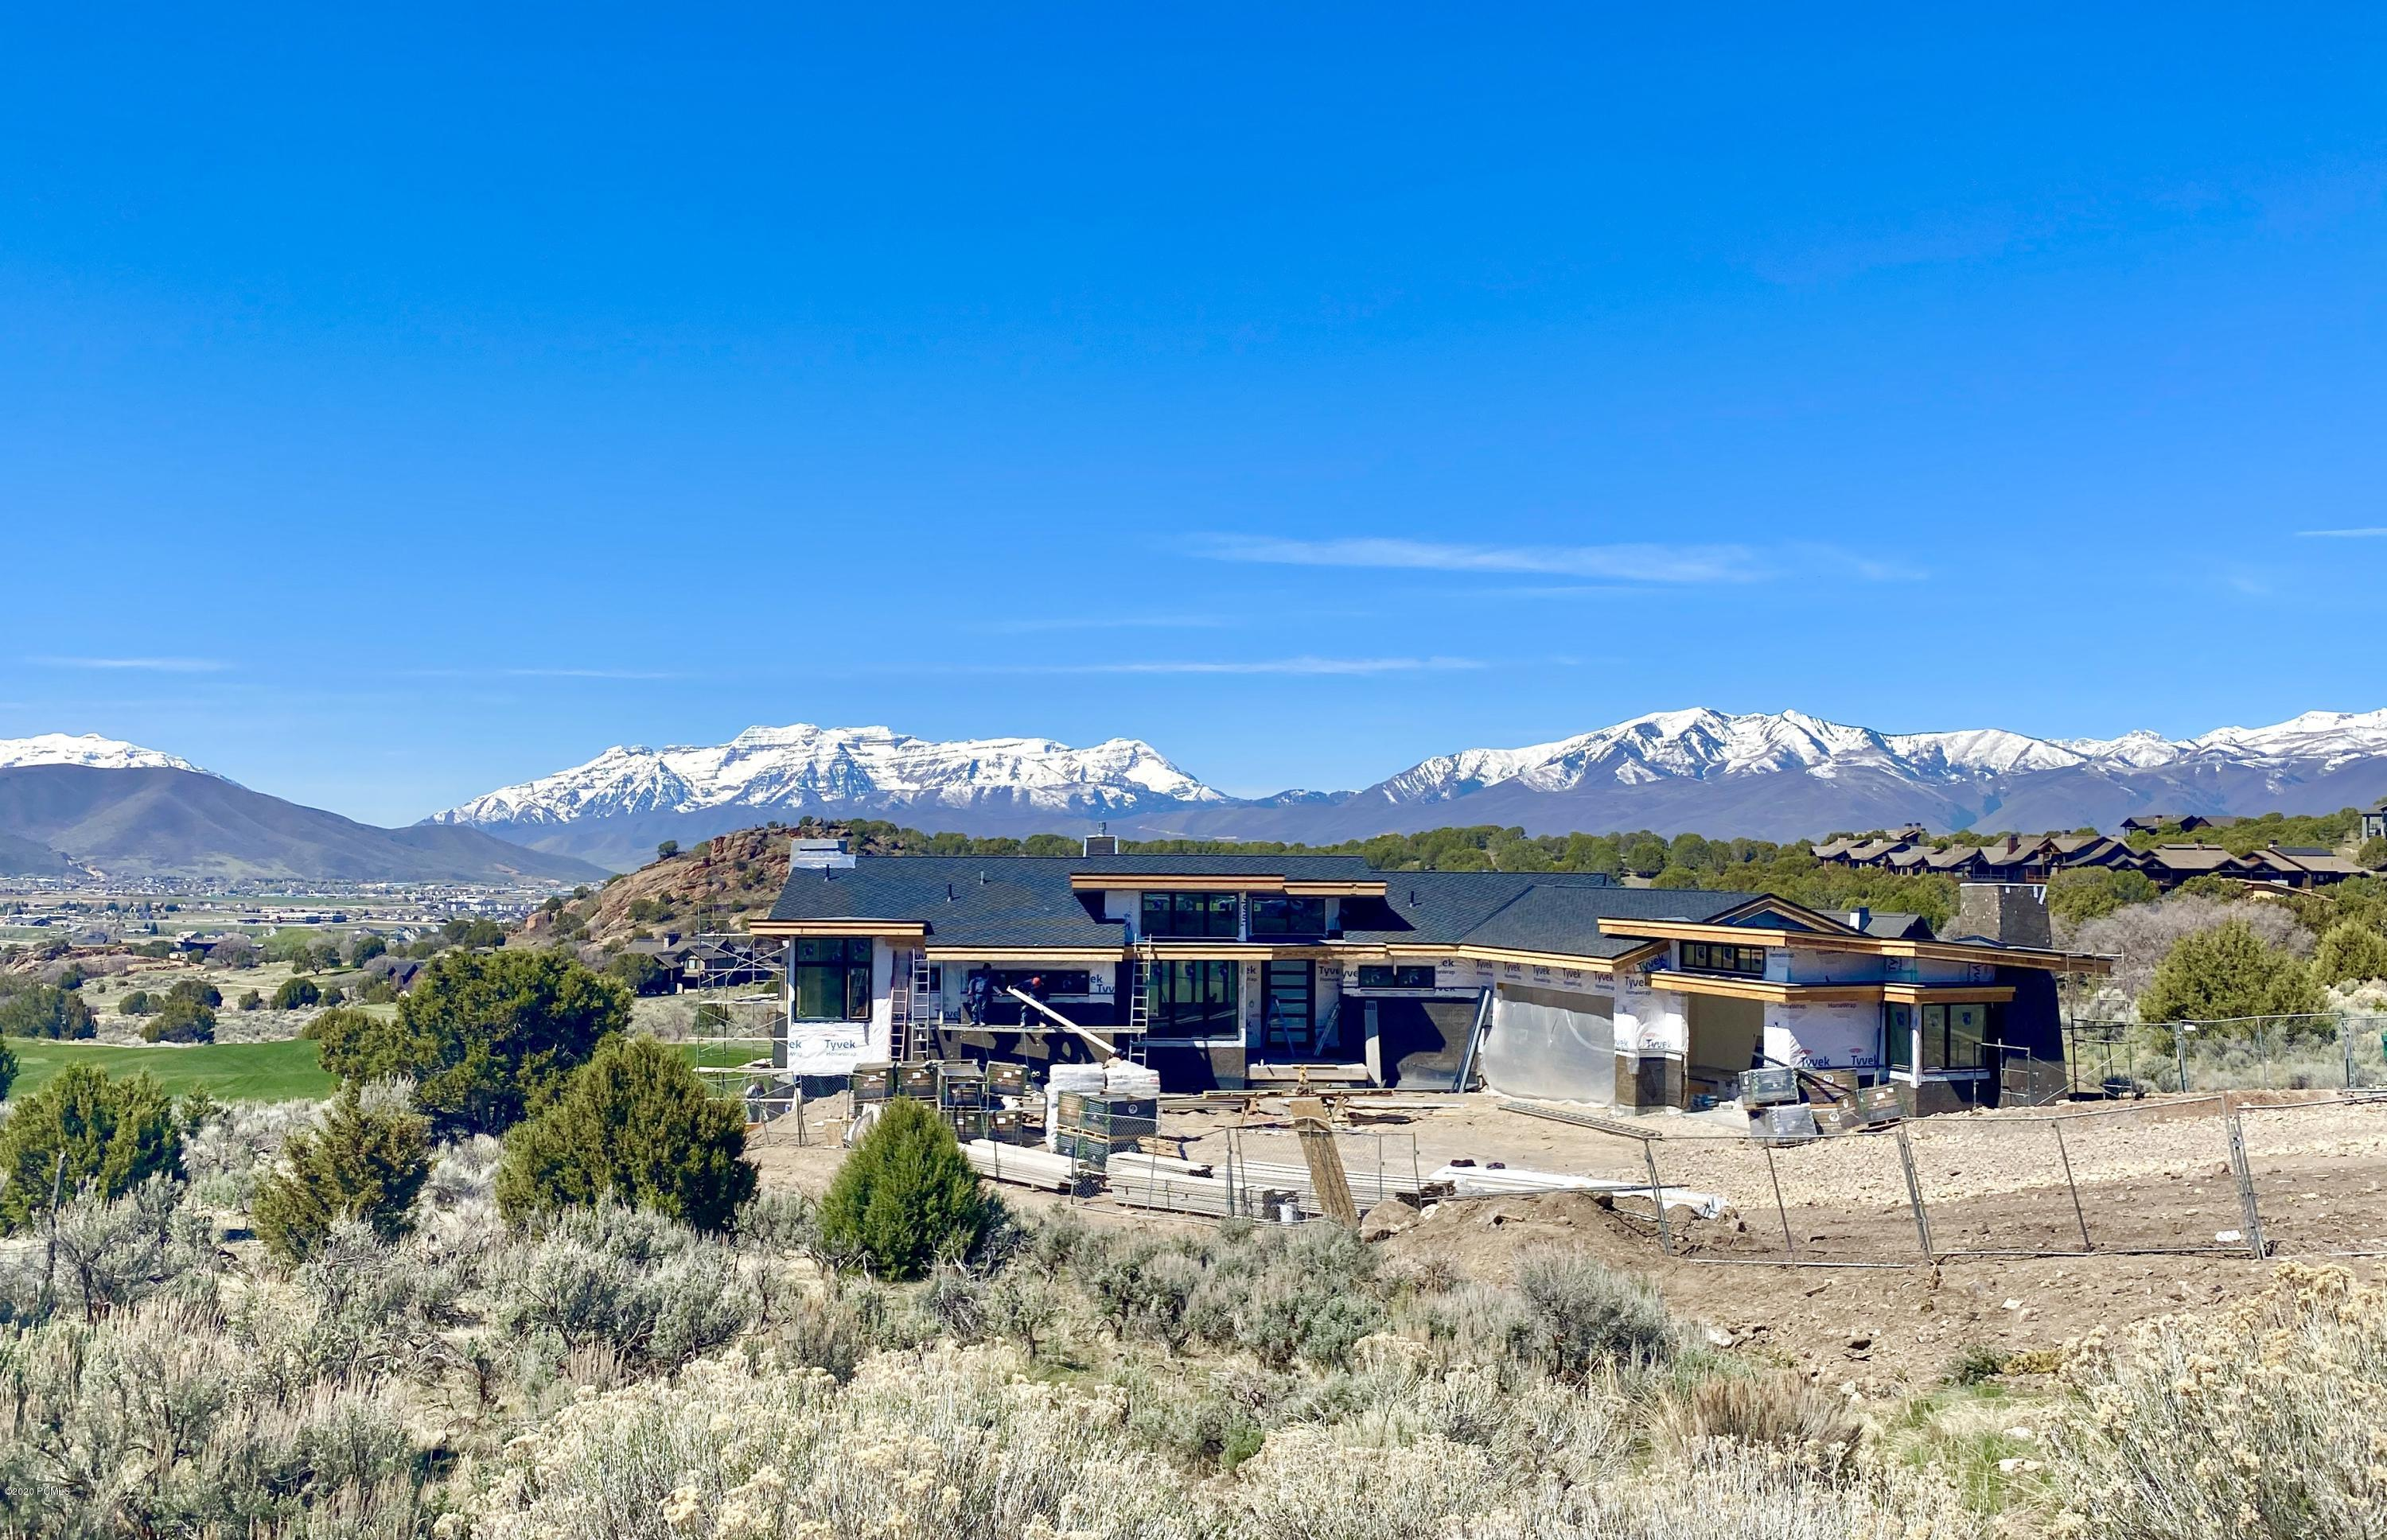 2888 Brown Duck Mtn Cir (Lot 105), Heber City, Utah 84032, 4 Bedrooms Bedrooms, ,6 BathroomsBathrooms,Single Family,For Sale,Brown Duck Mtn Cir (Lot 105),20190109112430415765000000